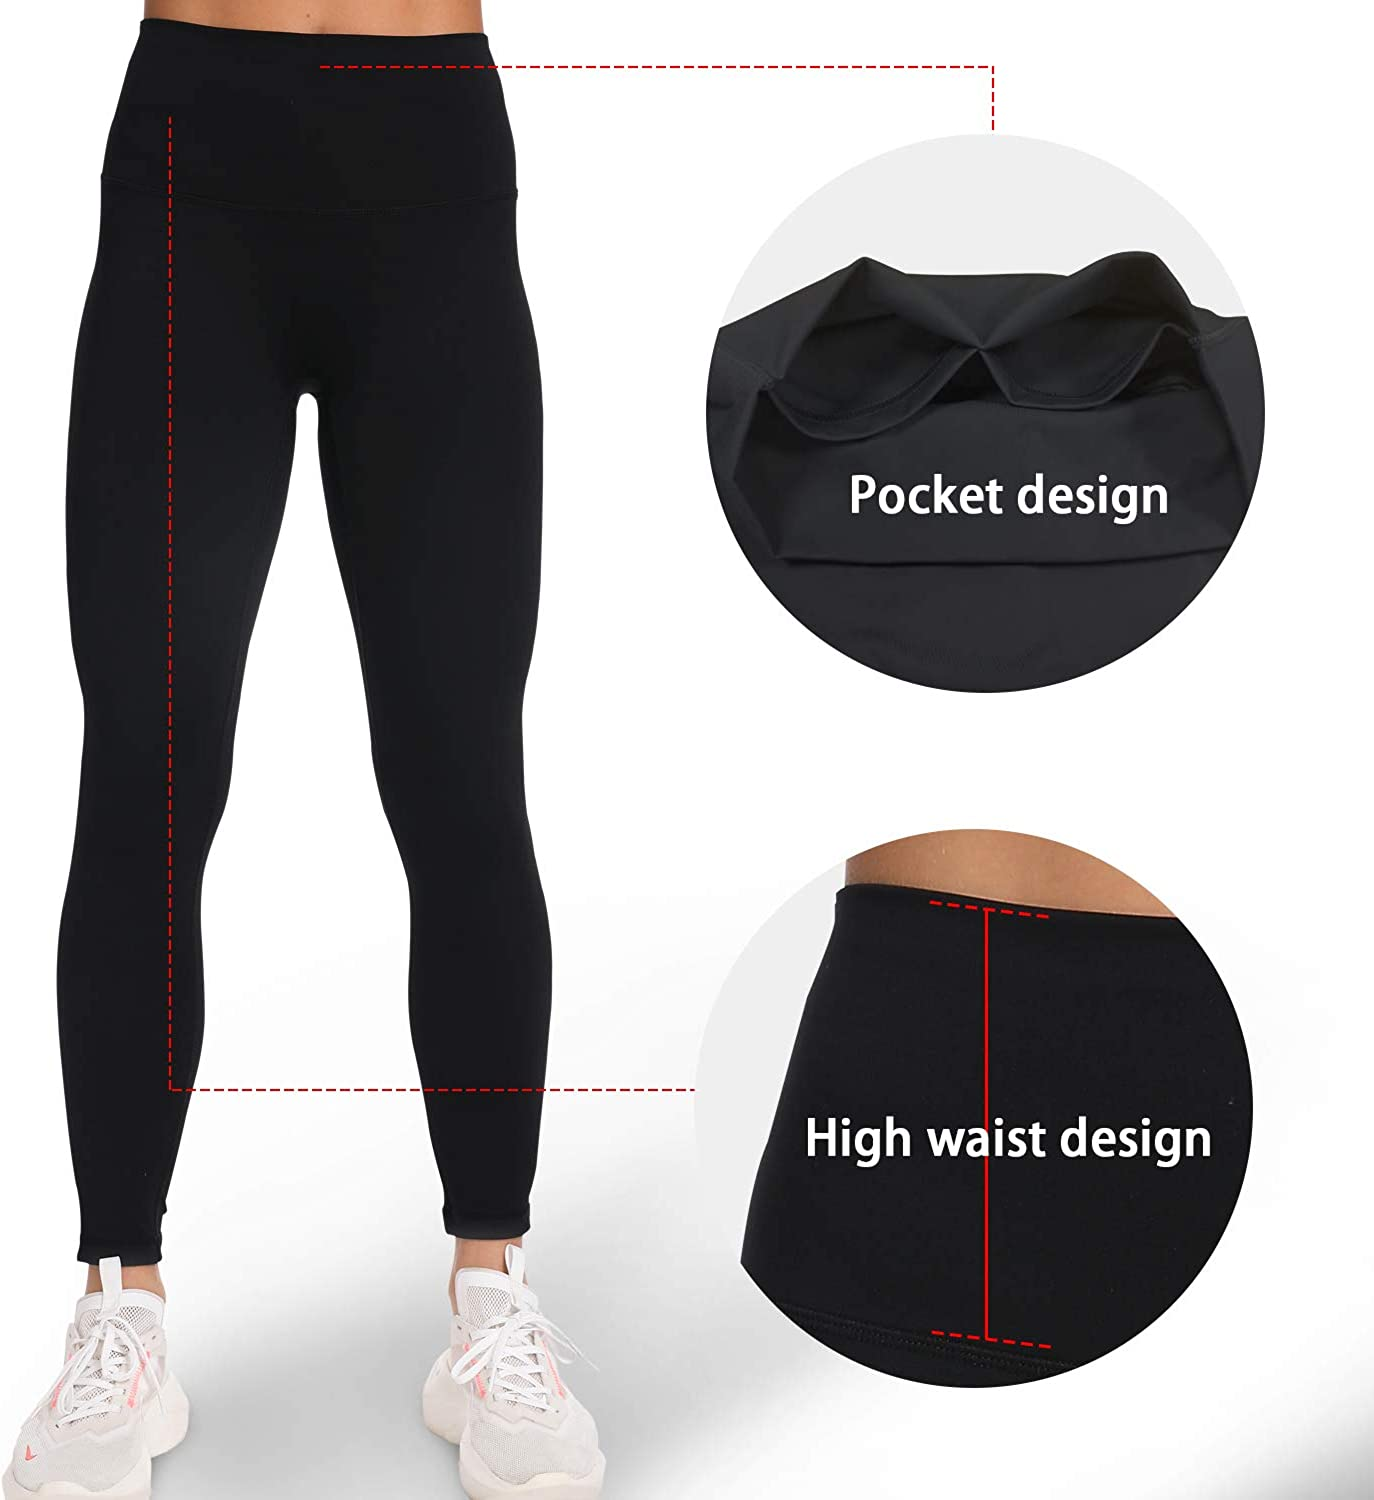 Ruched Butt Lift Workout Leggings High Waisted Yoga Pants for Women Yoga Pants with Hidden Pocket